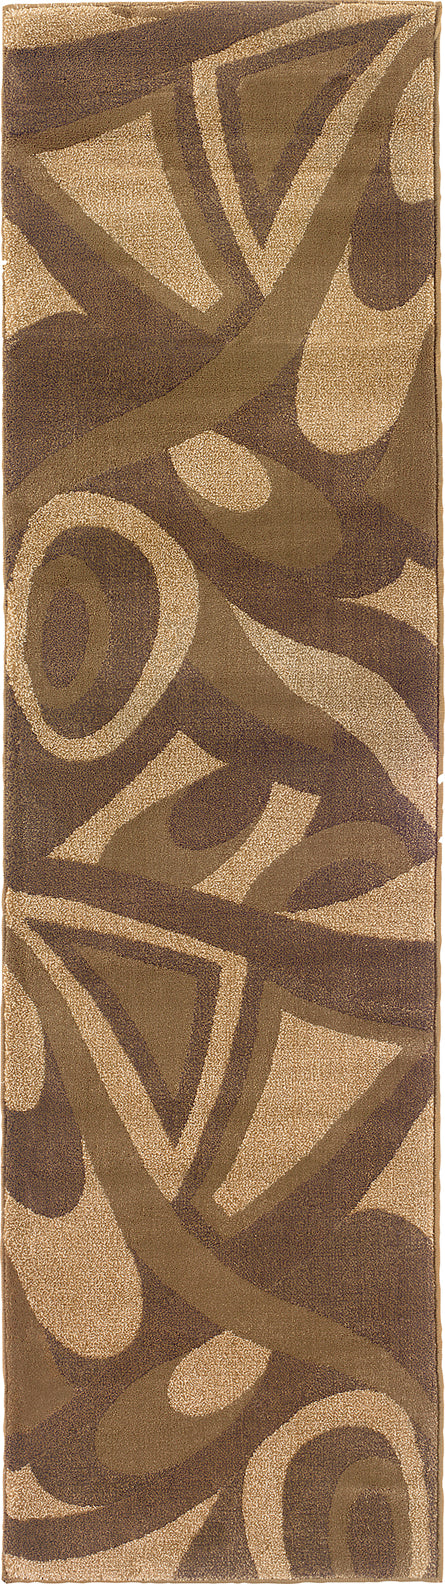 Oriental Weavers Tones 501X1 Brown/ Beige Area Rug main image